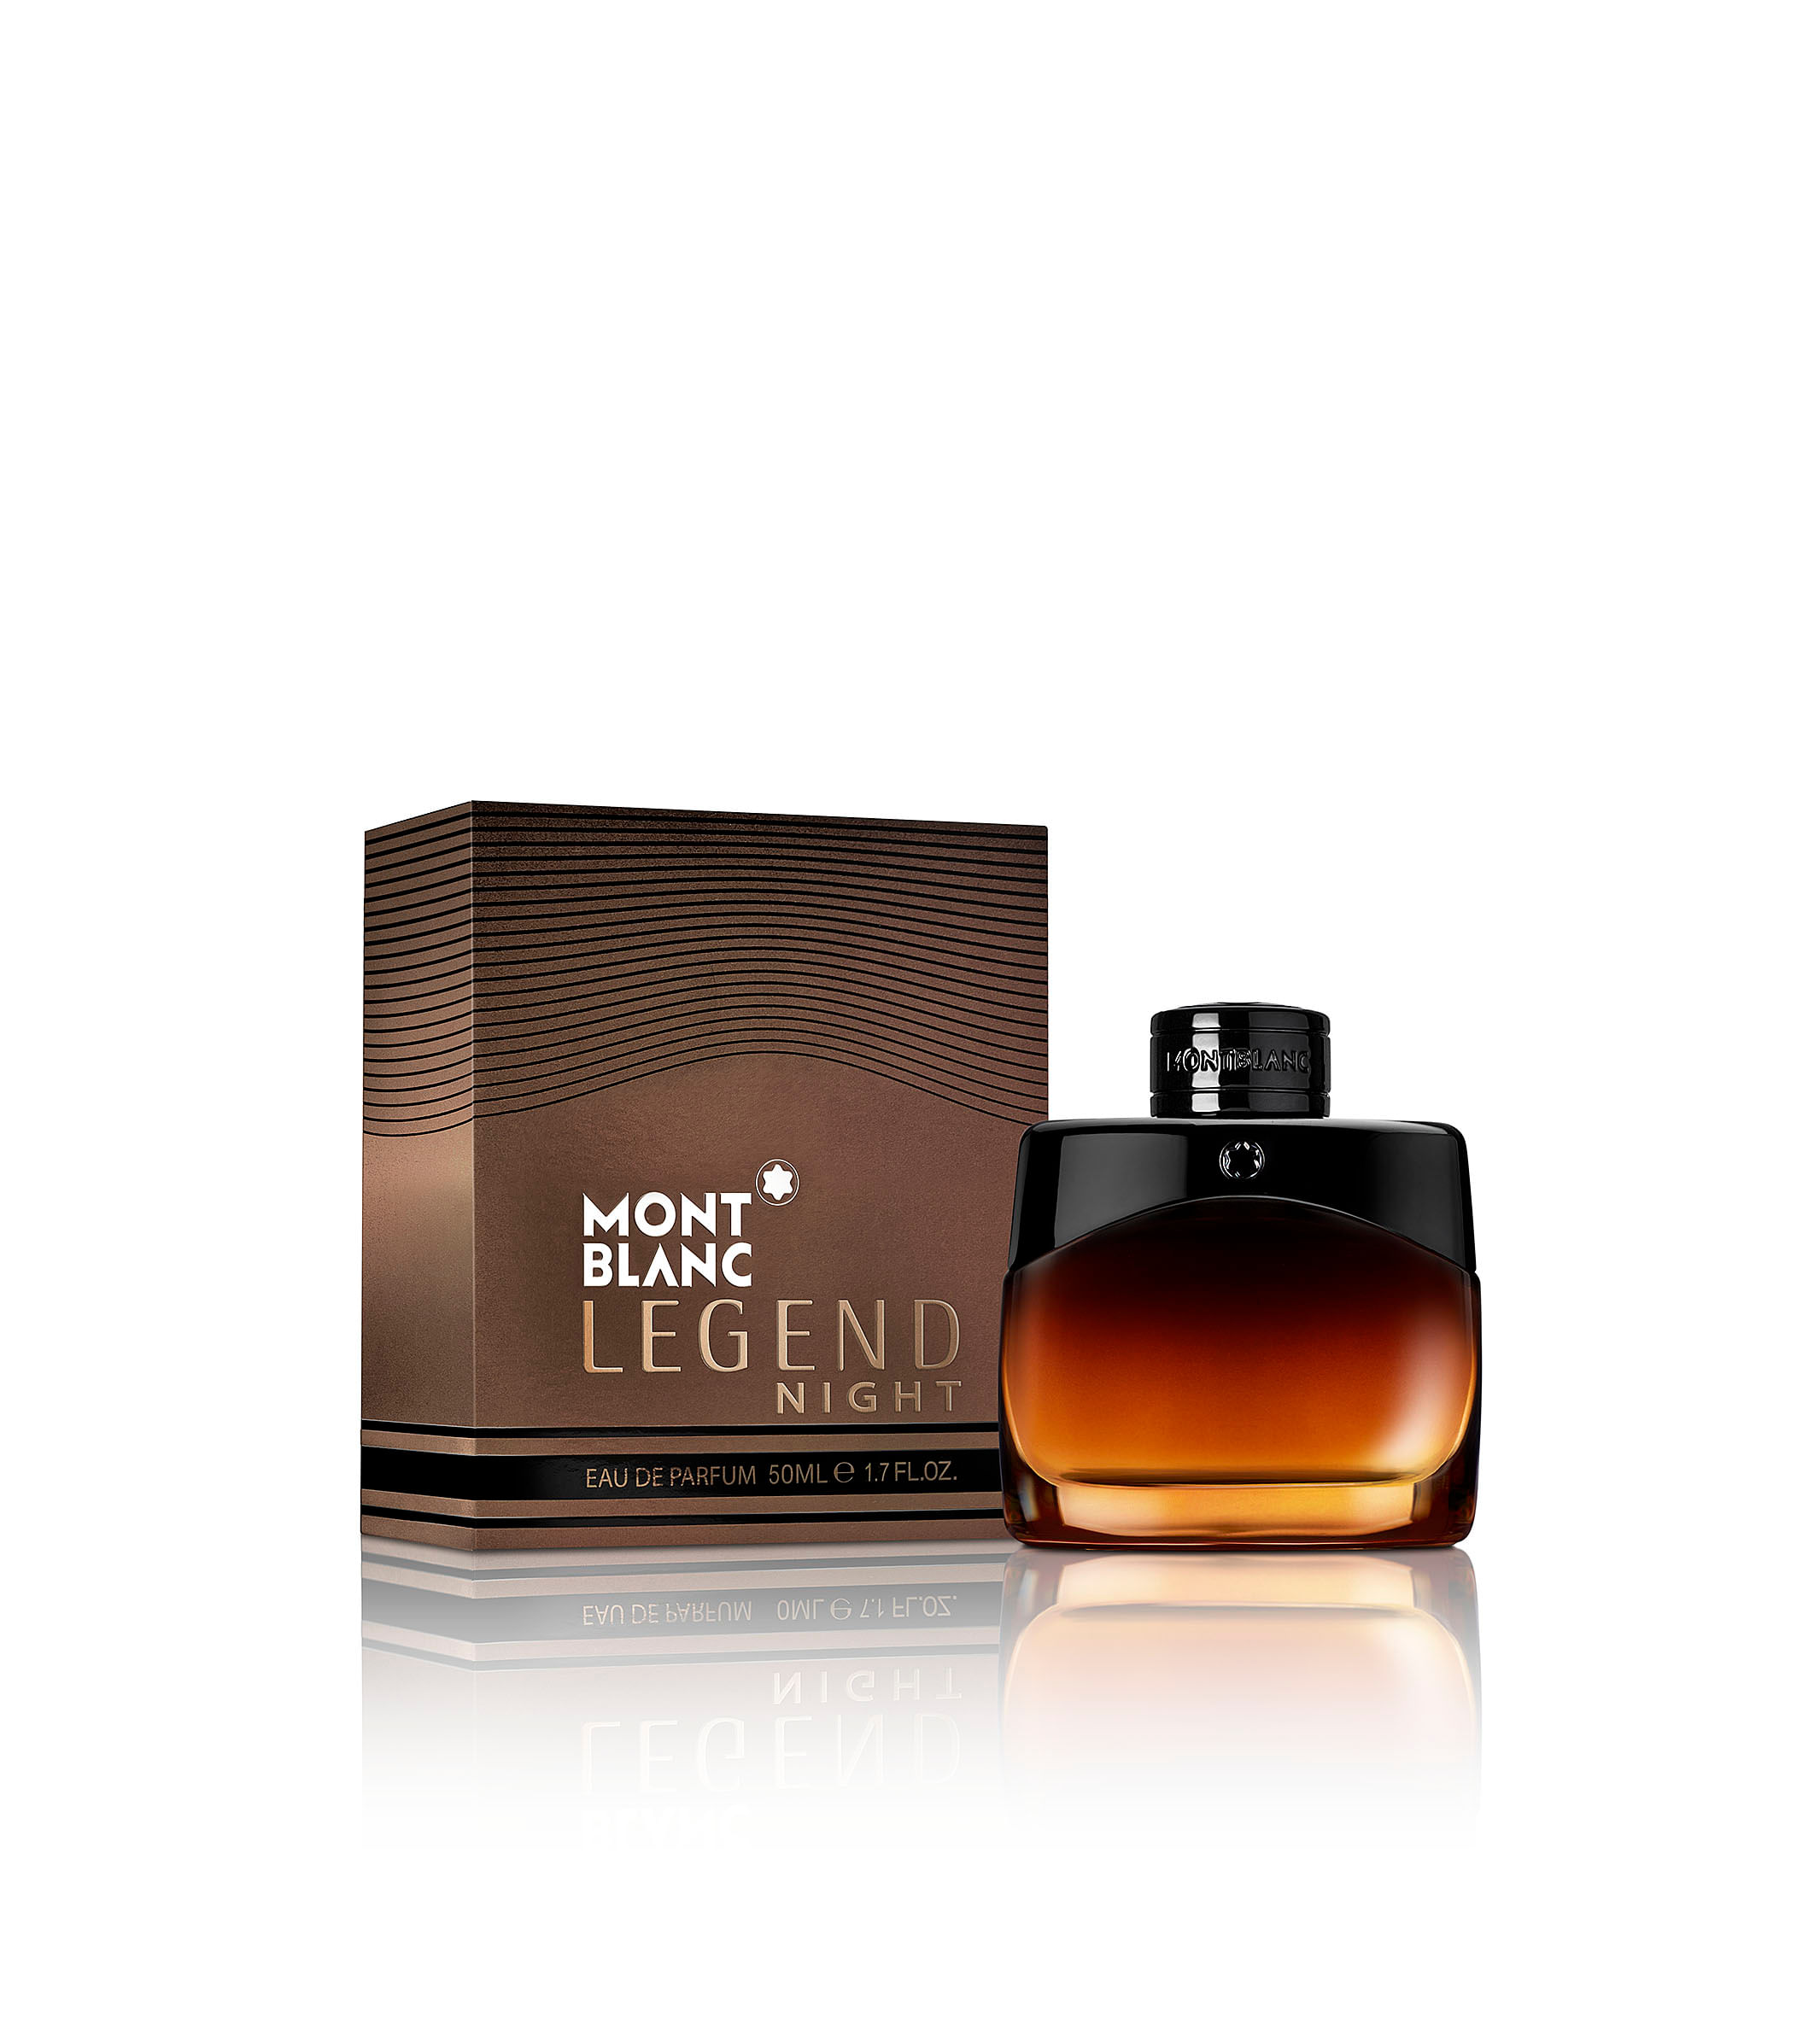 Perfume Hombre Legend Night edp 50 ml